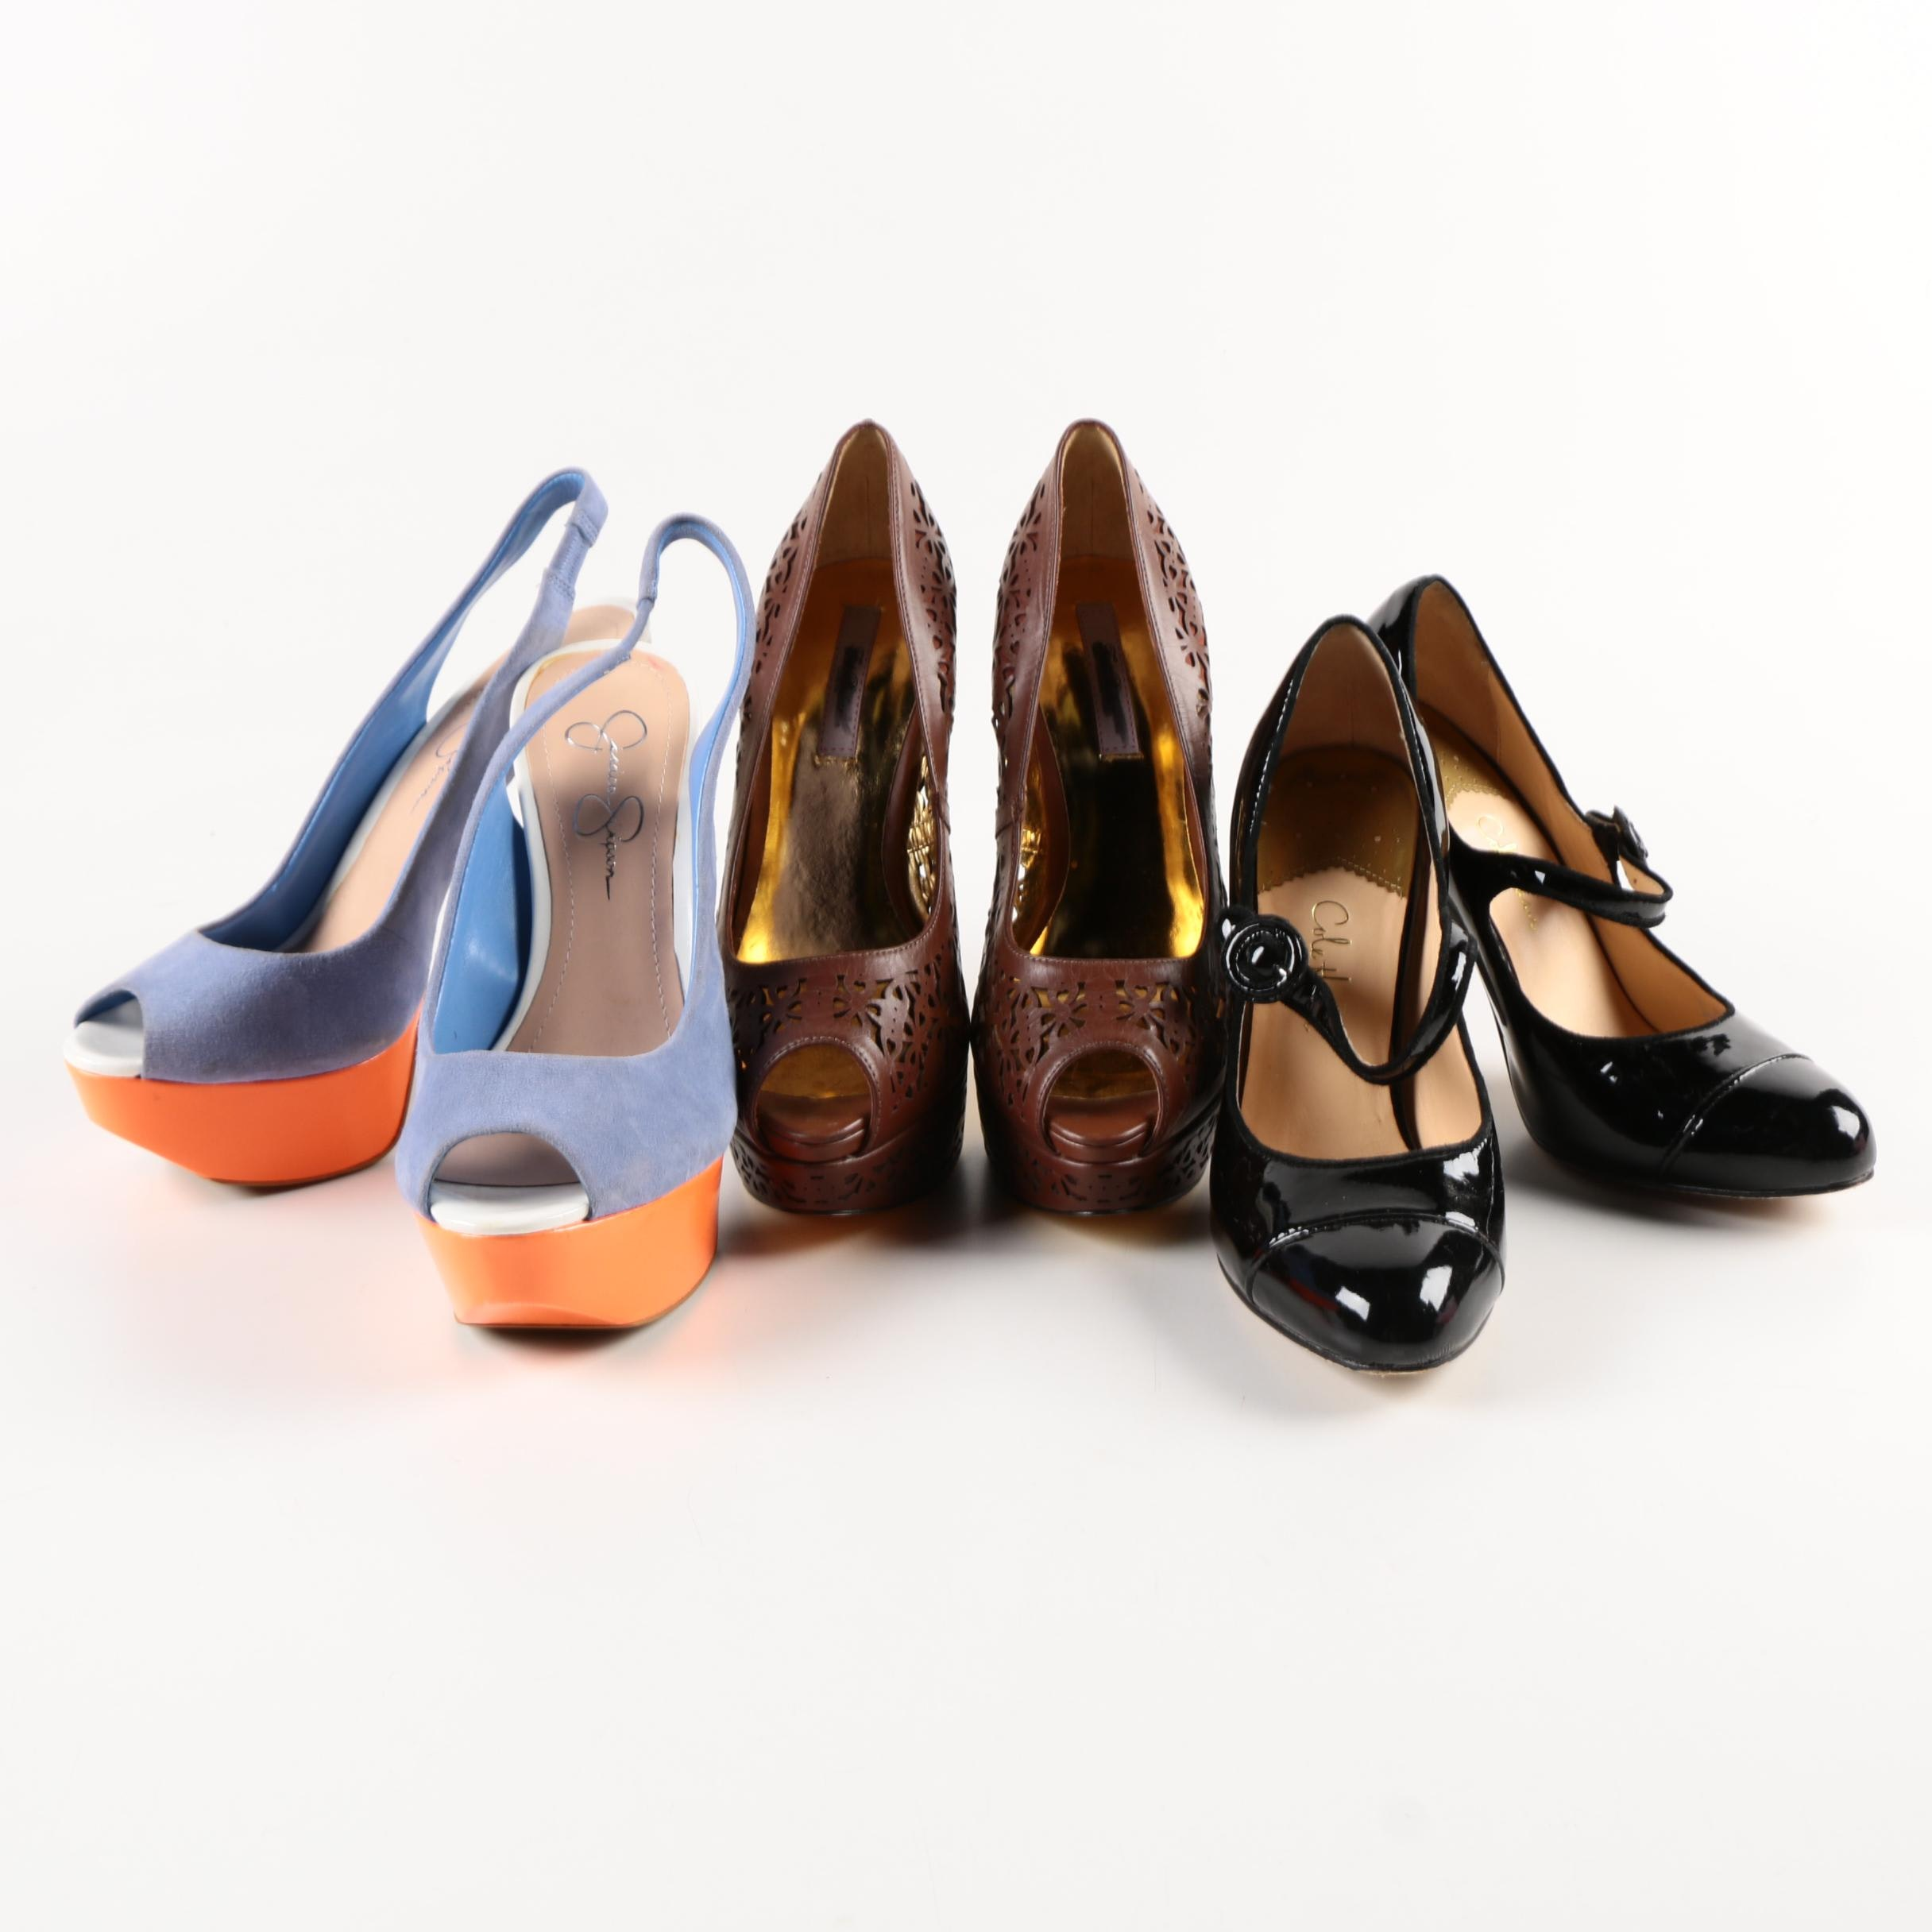 Three Pairs of Heels Including Jessica Simpson